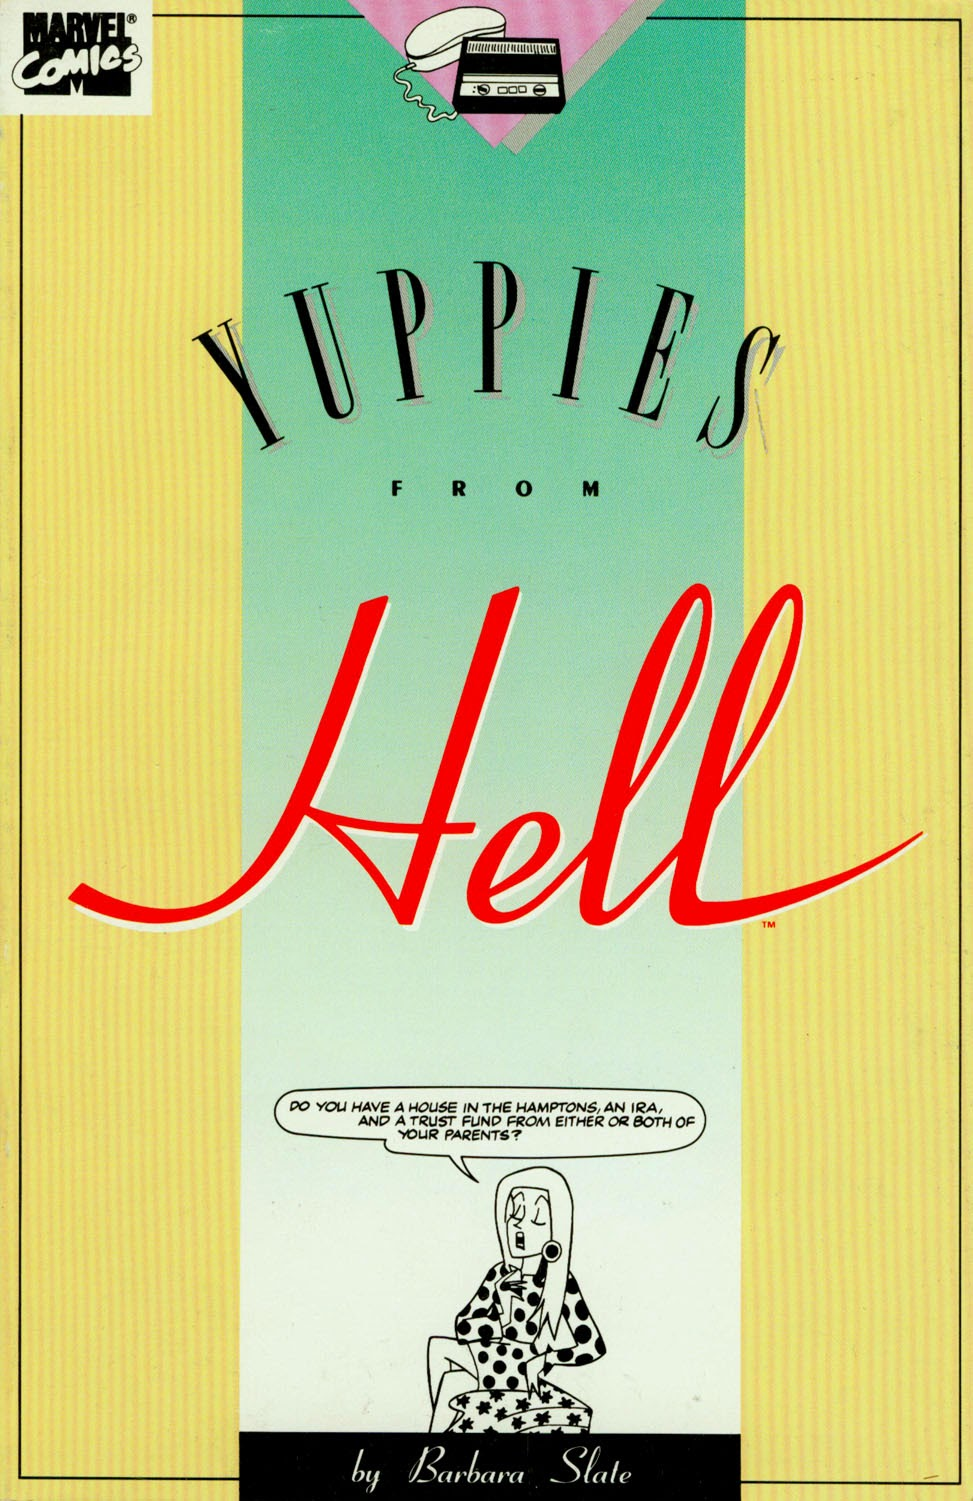 Yuppies From Hell Full Page 1